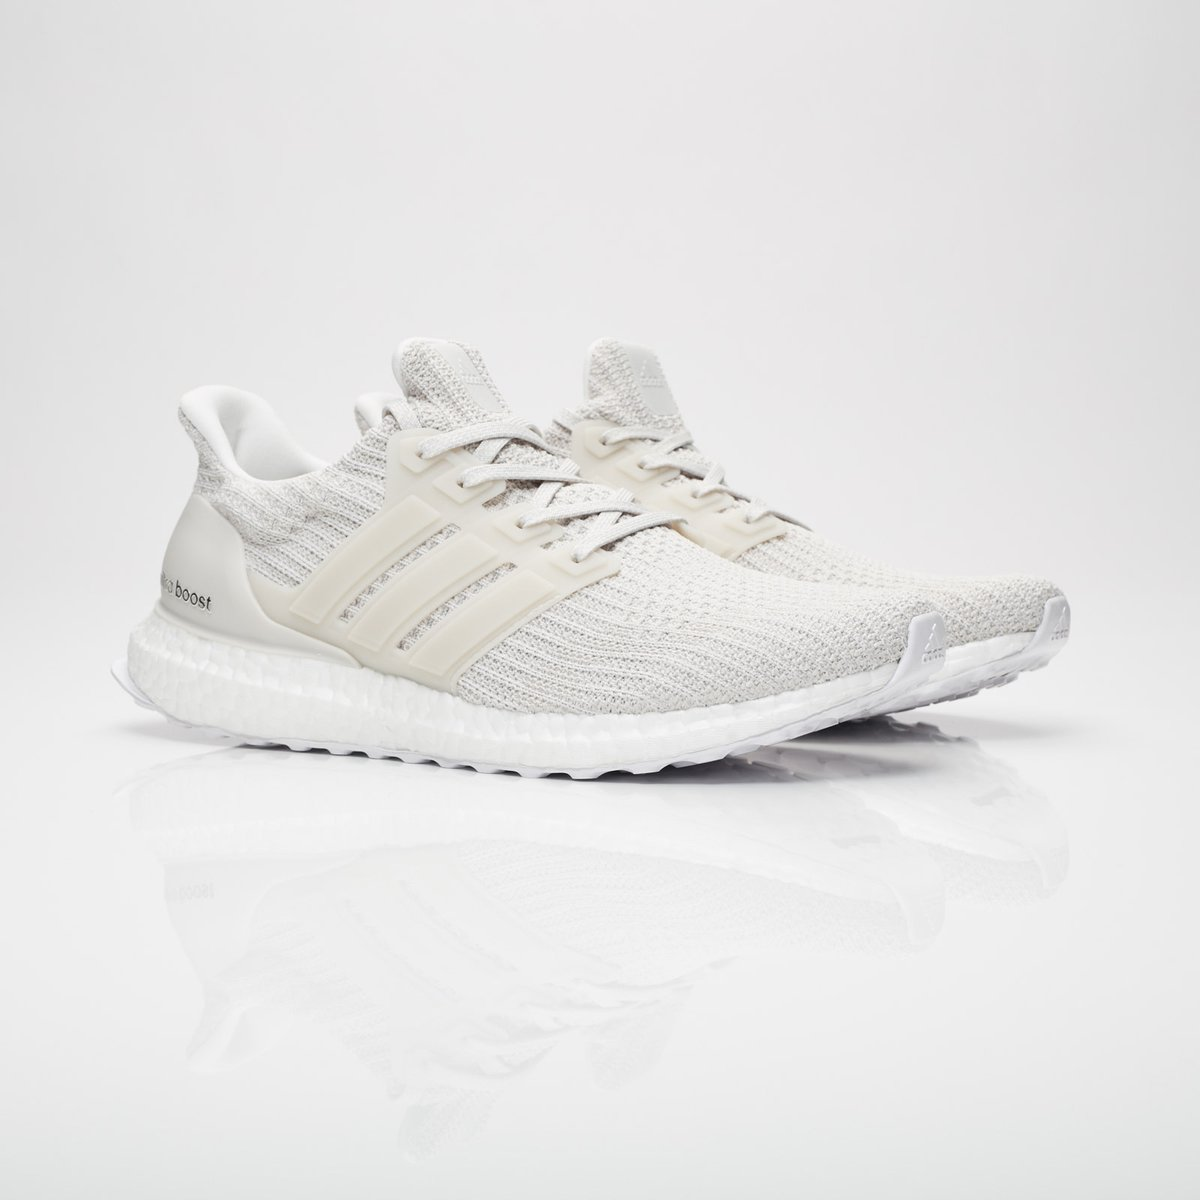 9aa2f71af40 BOOST LINKS on Twitter